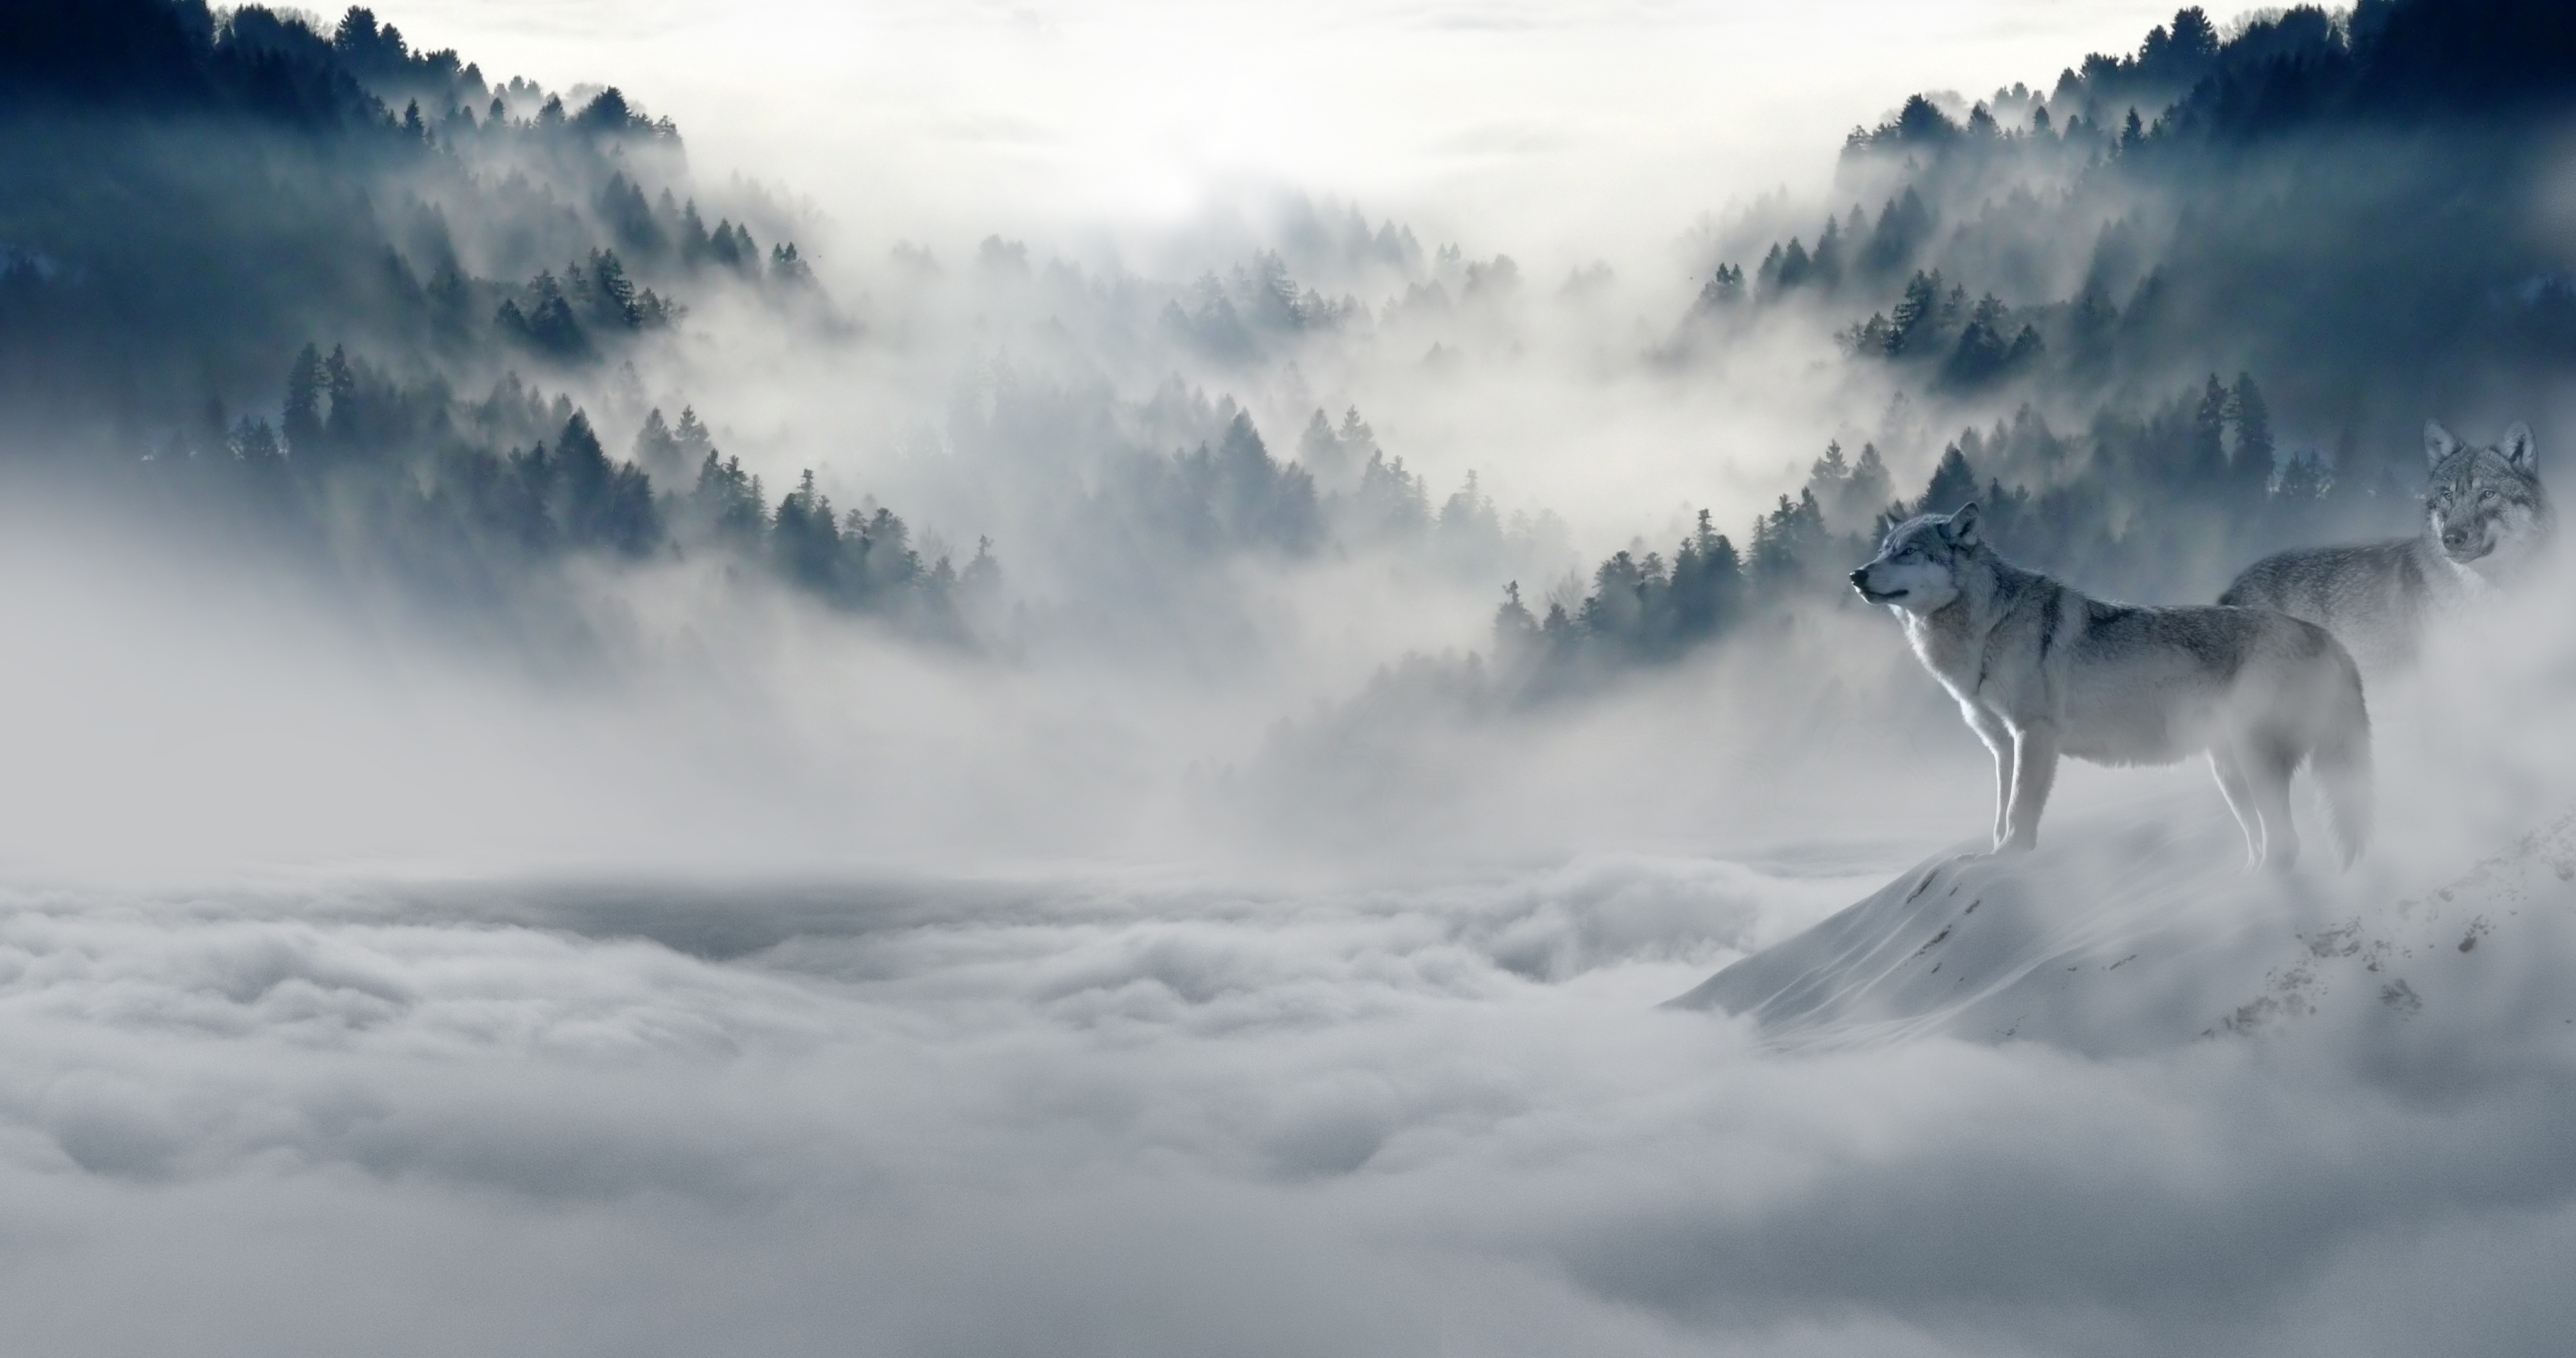 107515 download wallpaper Animals, Wolf, Wolfs, Predators, Fog, Snow, Mountains screensavers and pictures for free